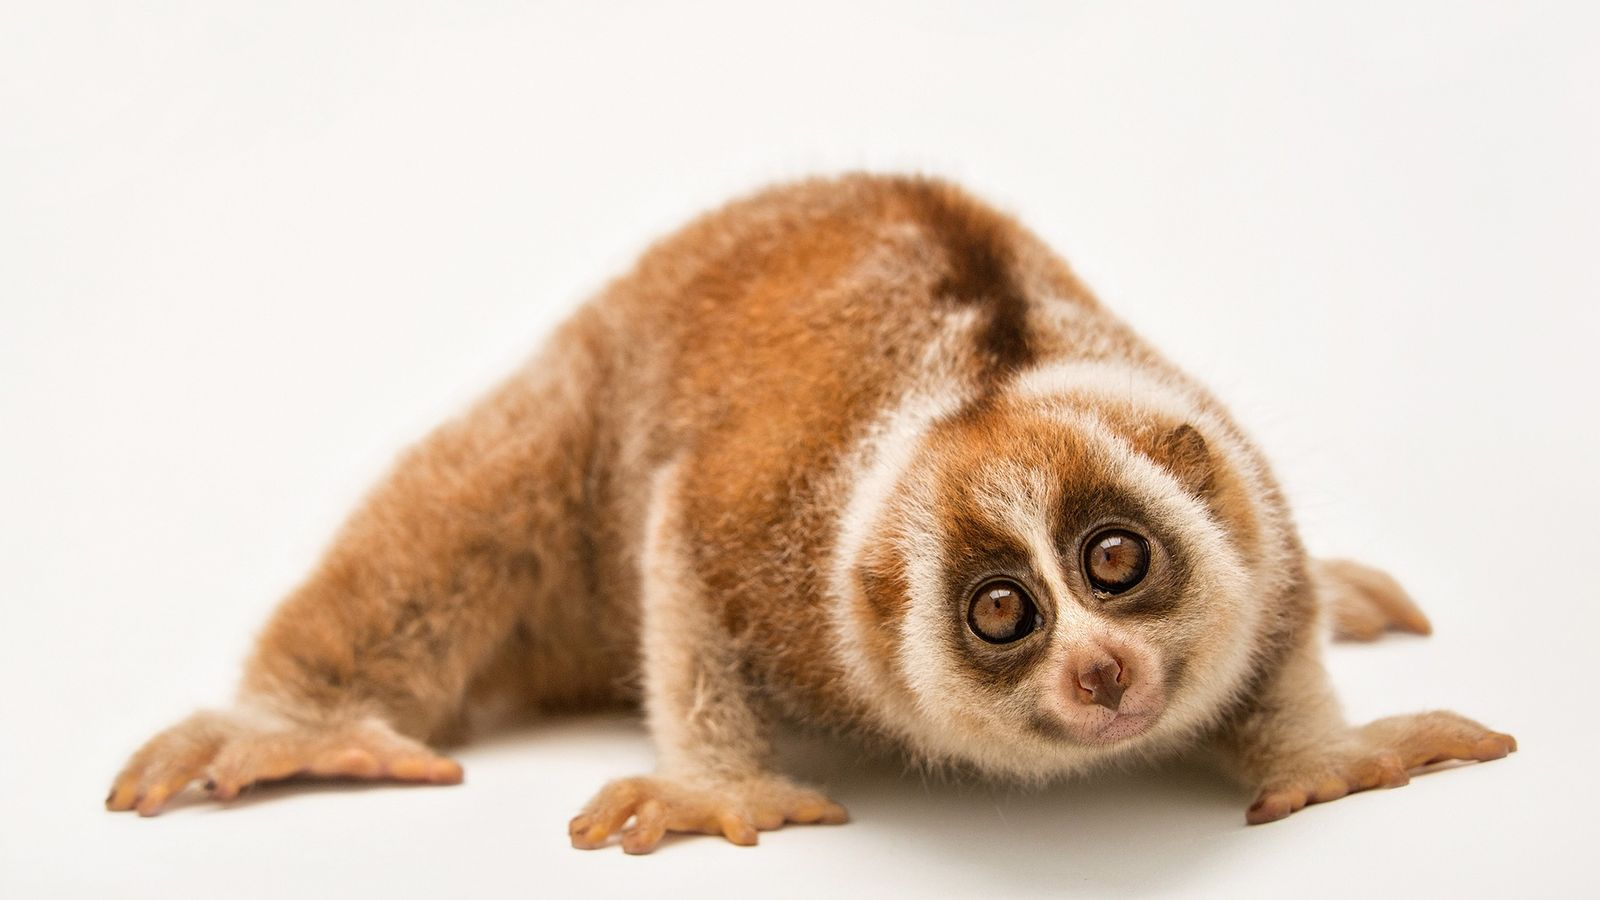 Rescuing the slow loris